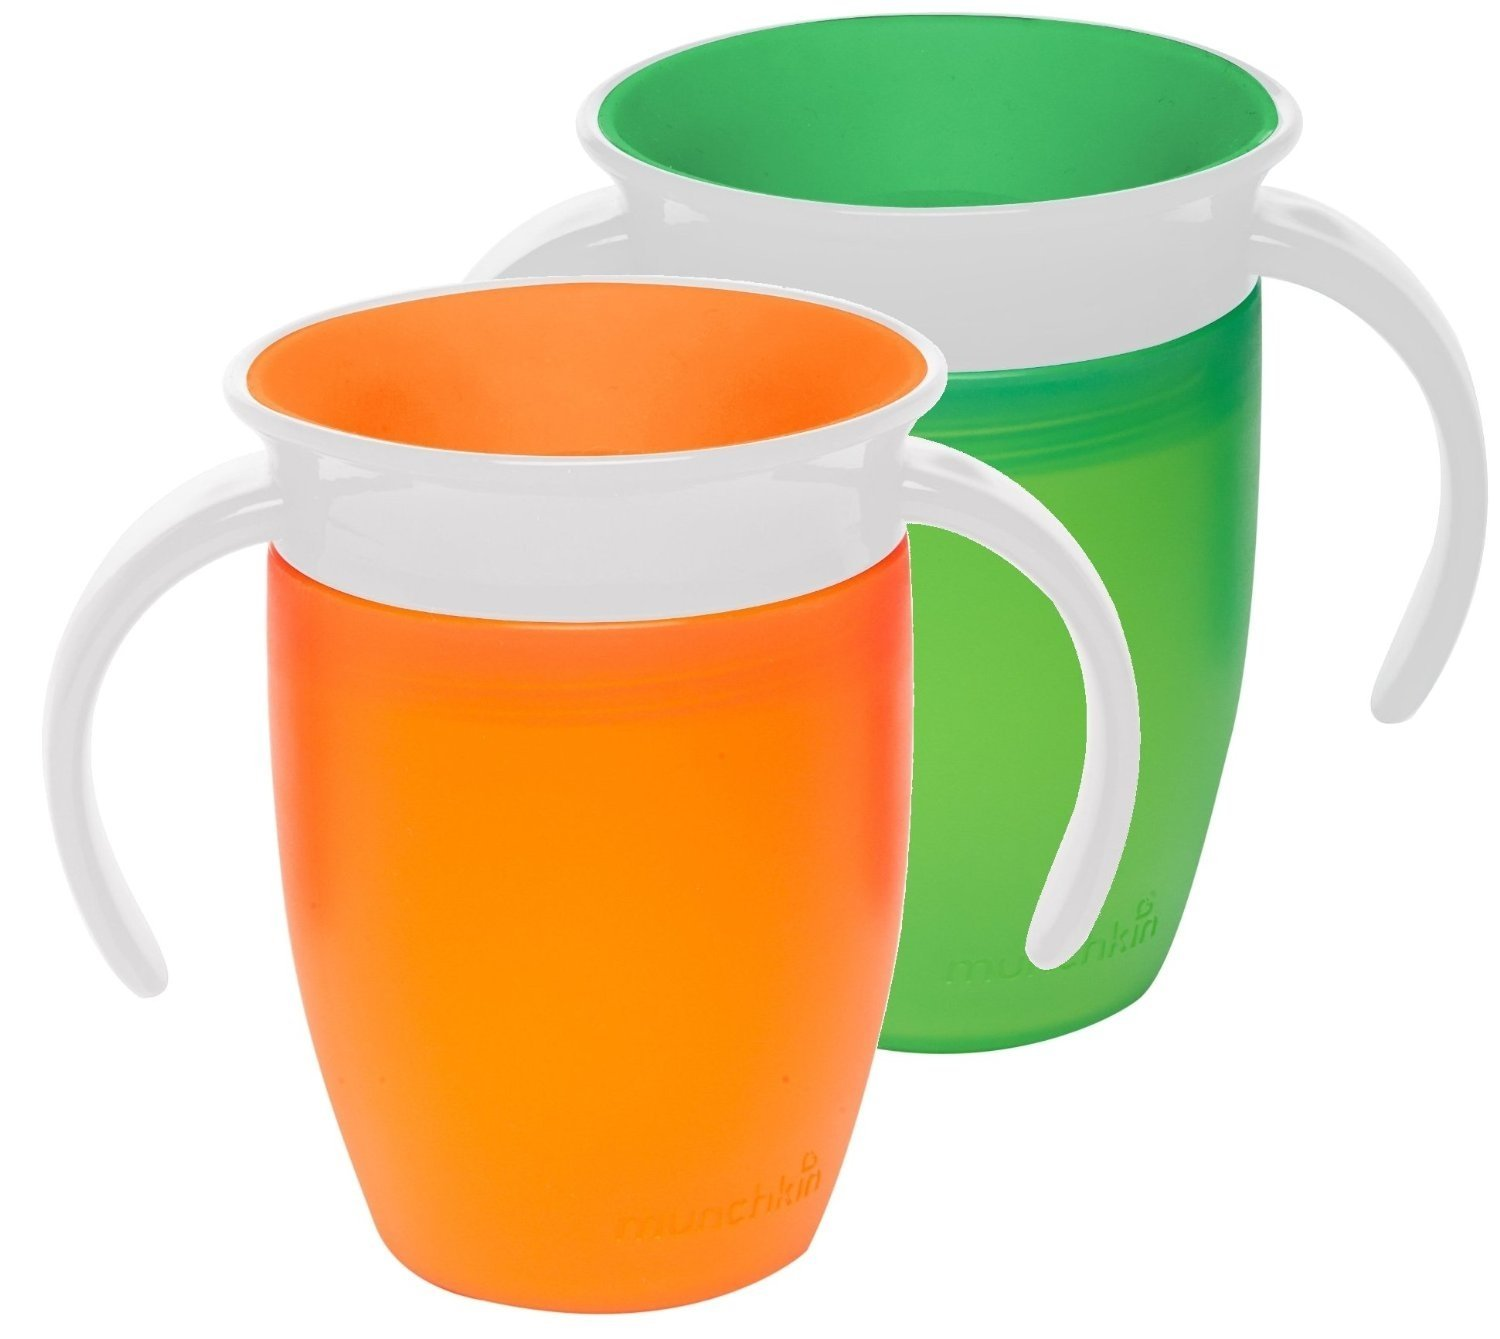 Munchkin Miracle 360 Trainer Cup, Green/Orange, 7 Ounce, 2 Count